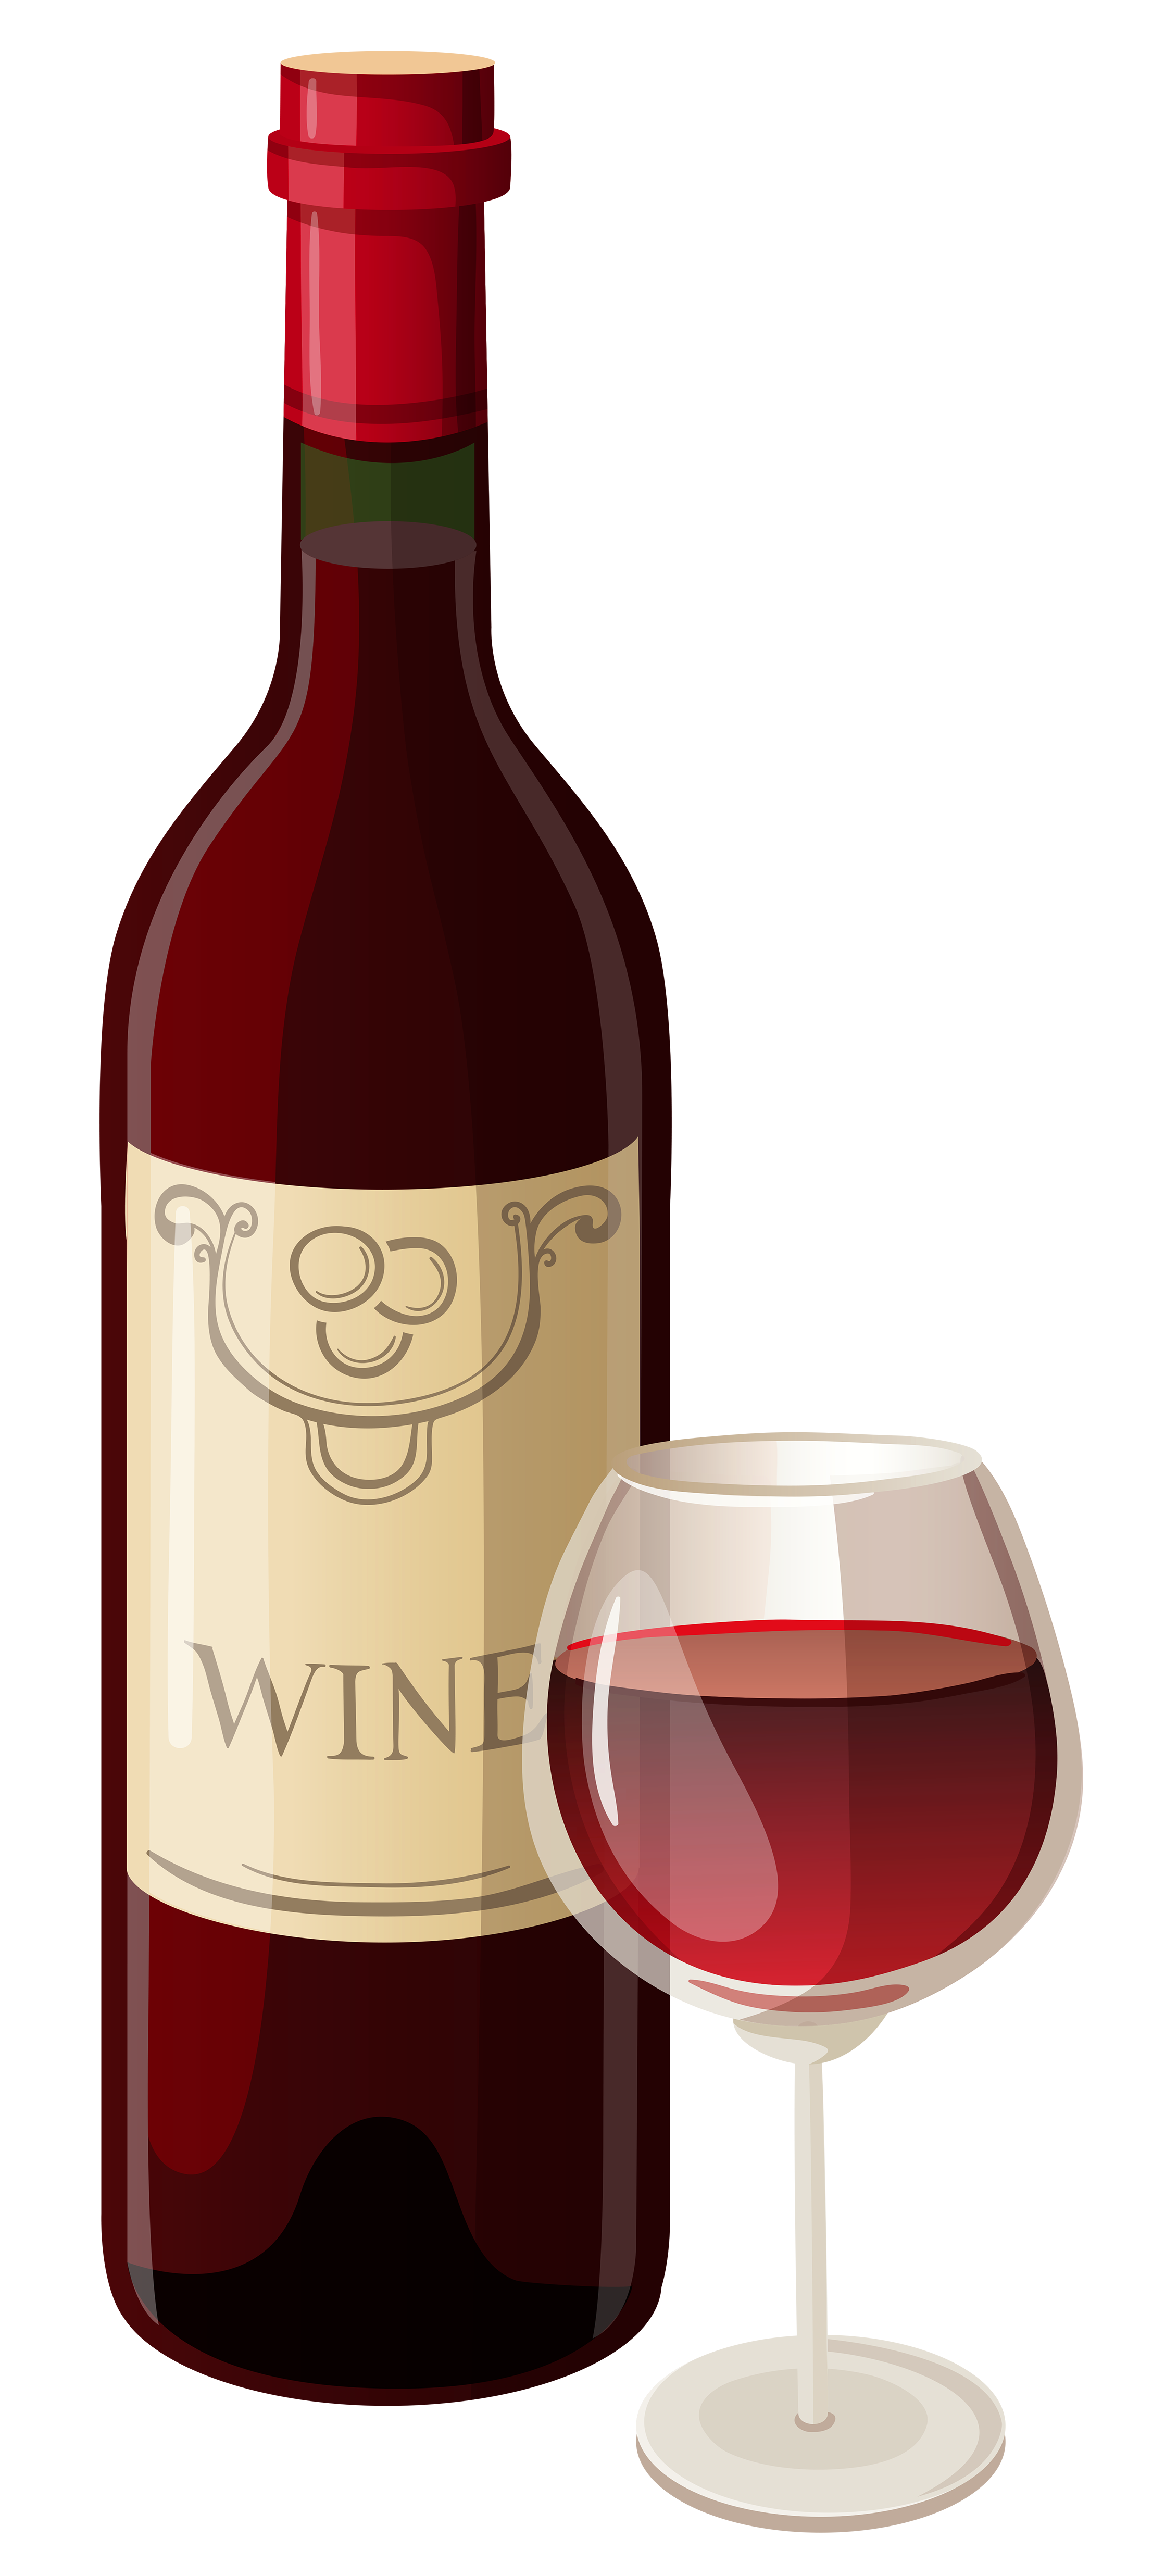 PNG Wine Bottle And Glass - 53496